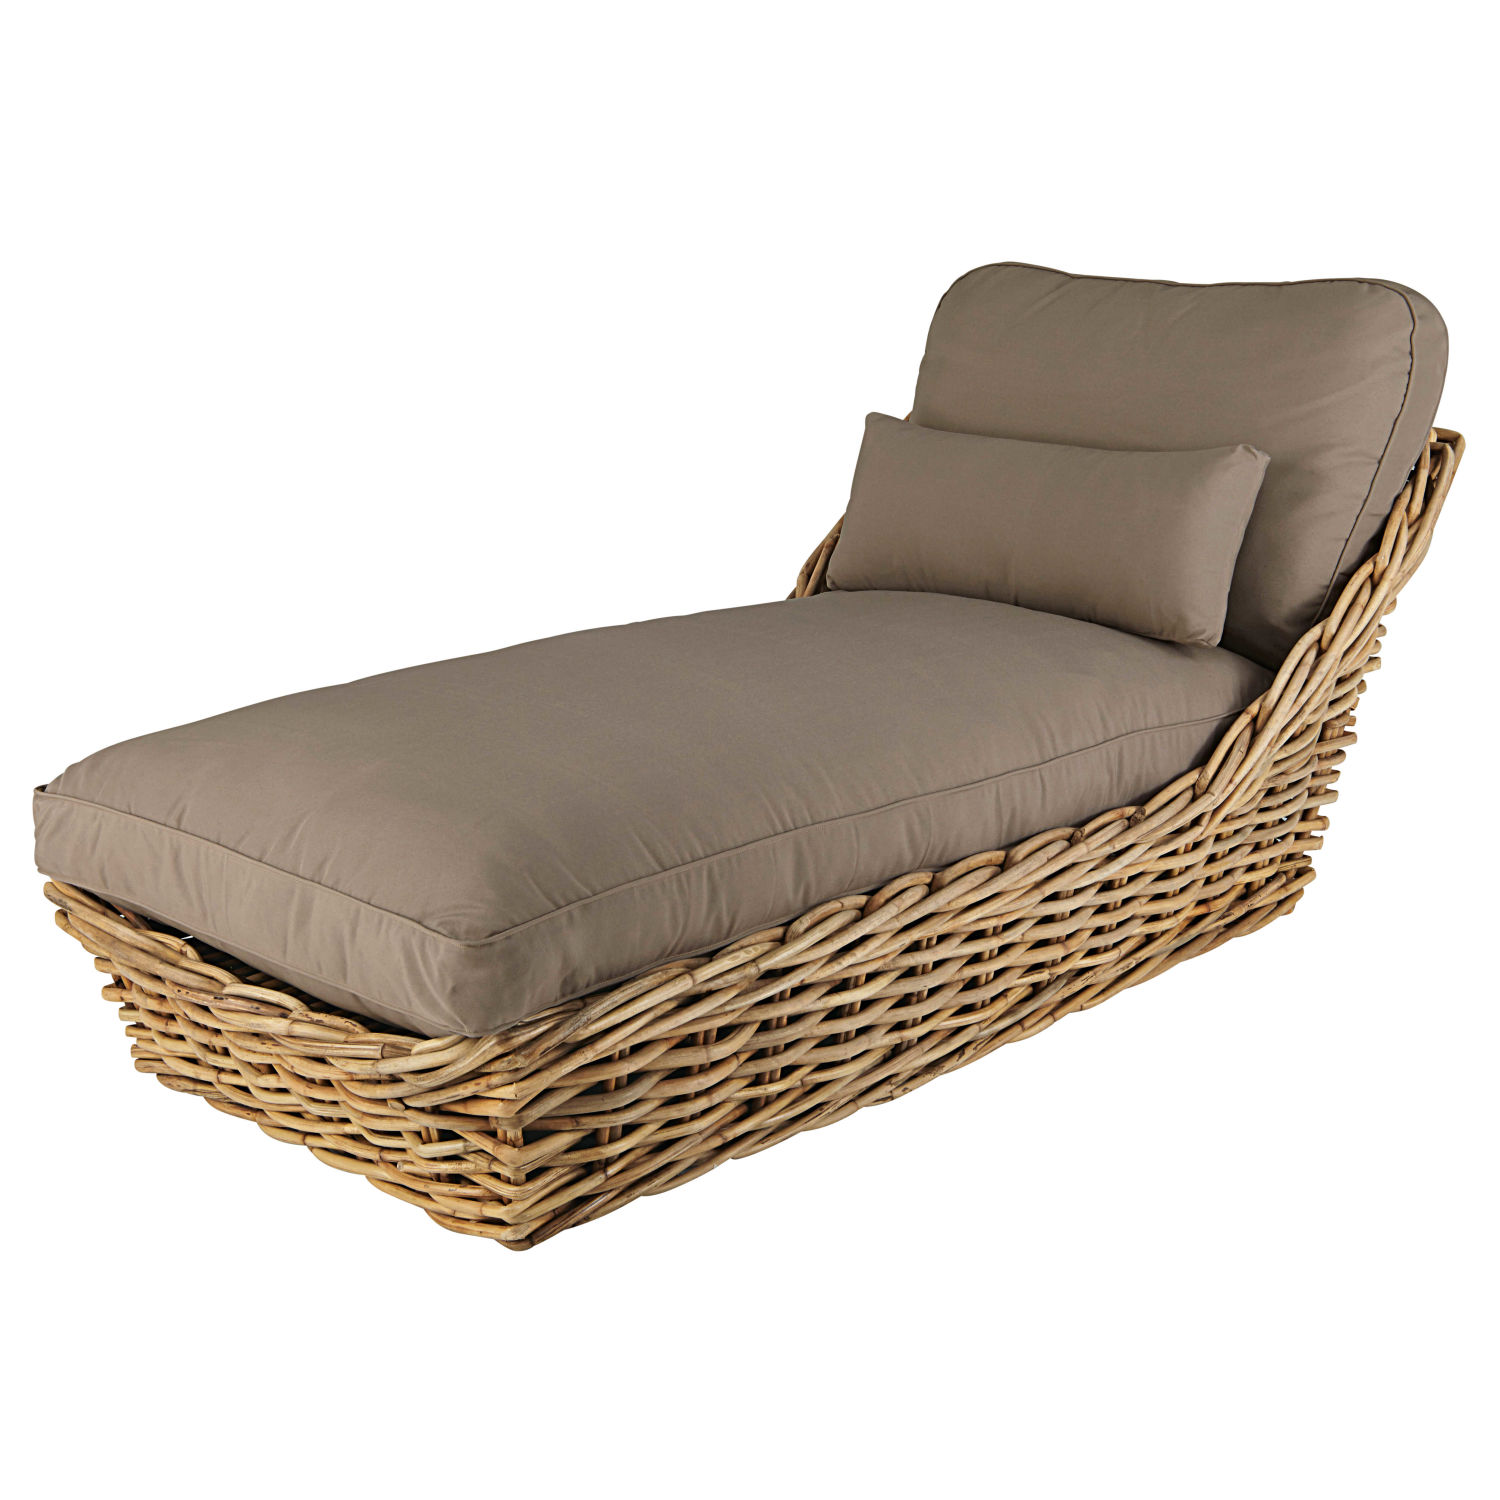 Garden chaise longue in rattan with taupe cushions St Tropez ... on chaise furniture, chaise recliner chair, chaise sofa sleeper,